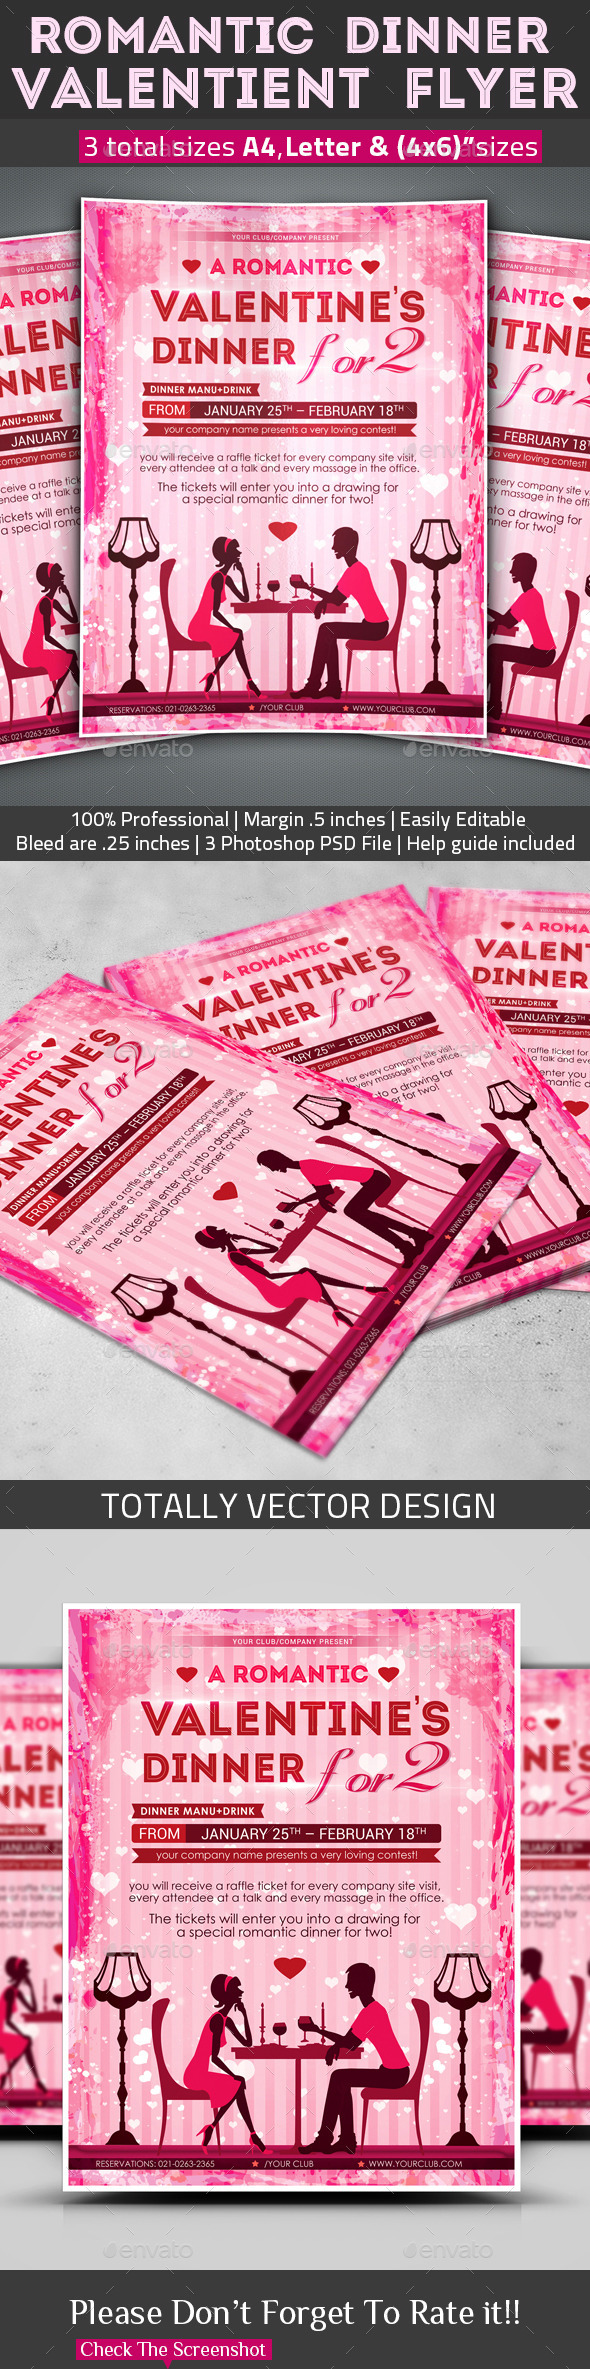 GraphicRiver Romantic Dinner Valentine s Flyer 10155021